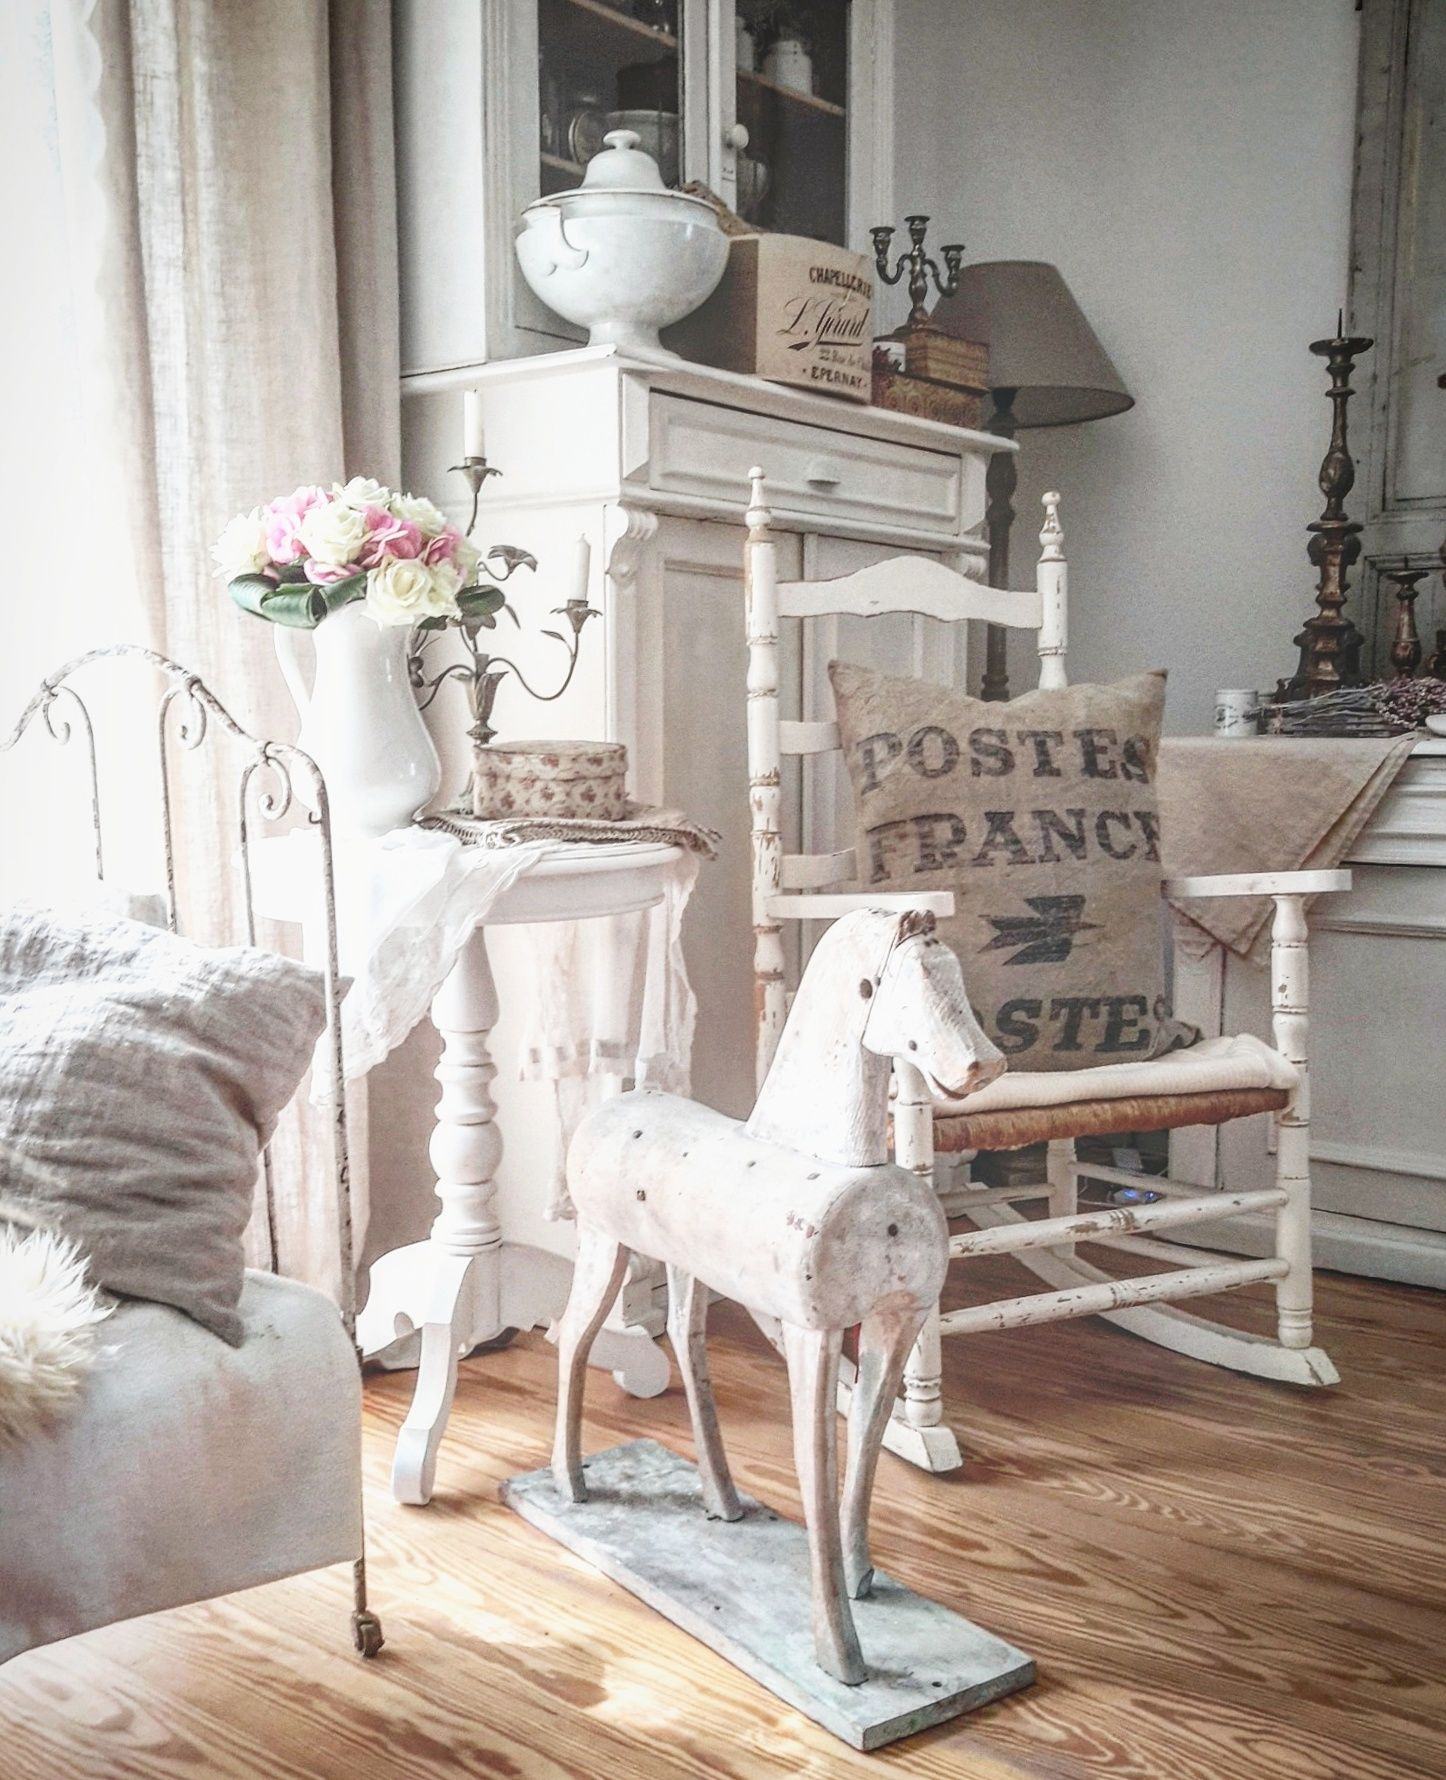 Shabby Chic Möbel Deko At Home Brocante Charmante Deko In 2019 Shabby Chic Möbel